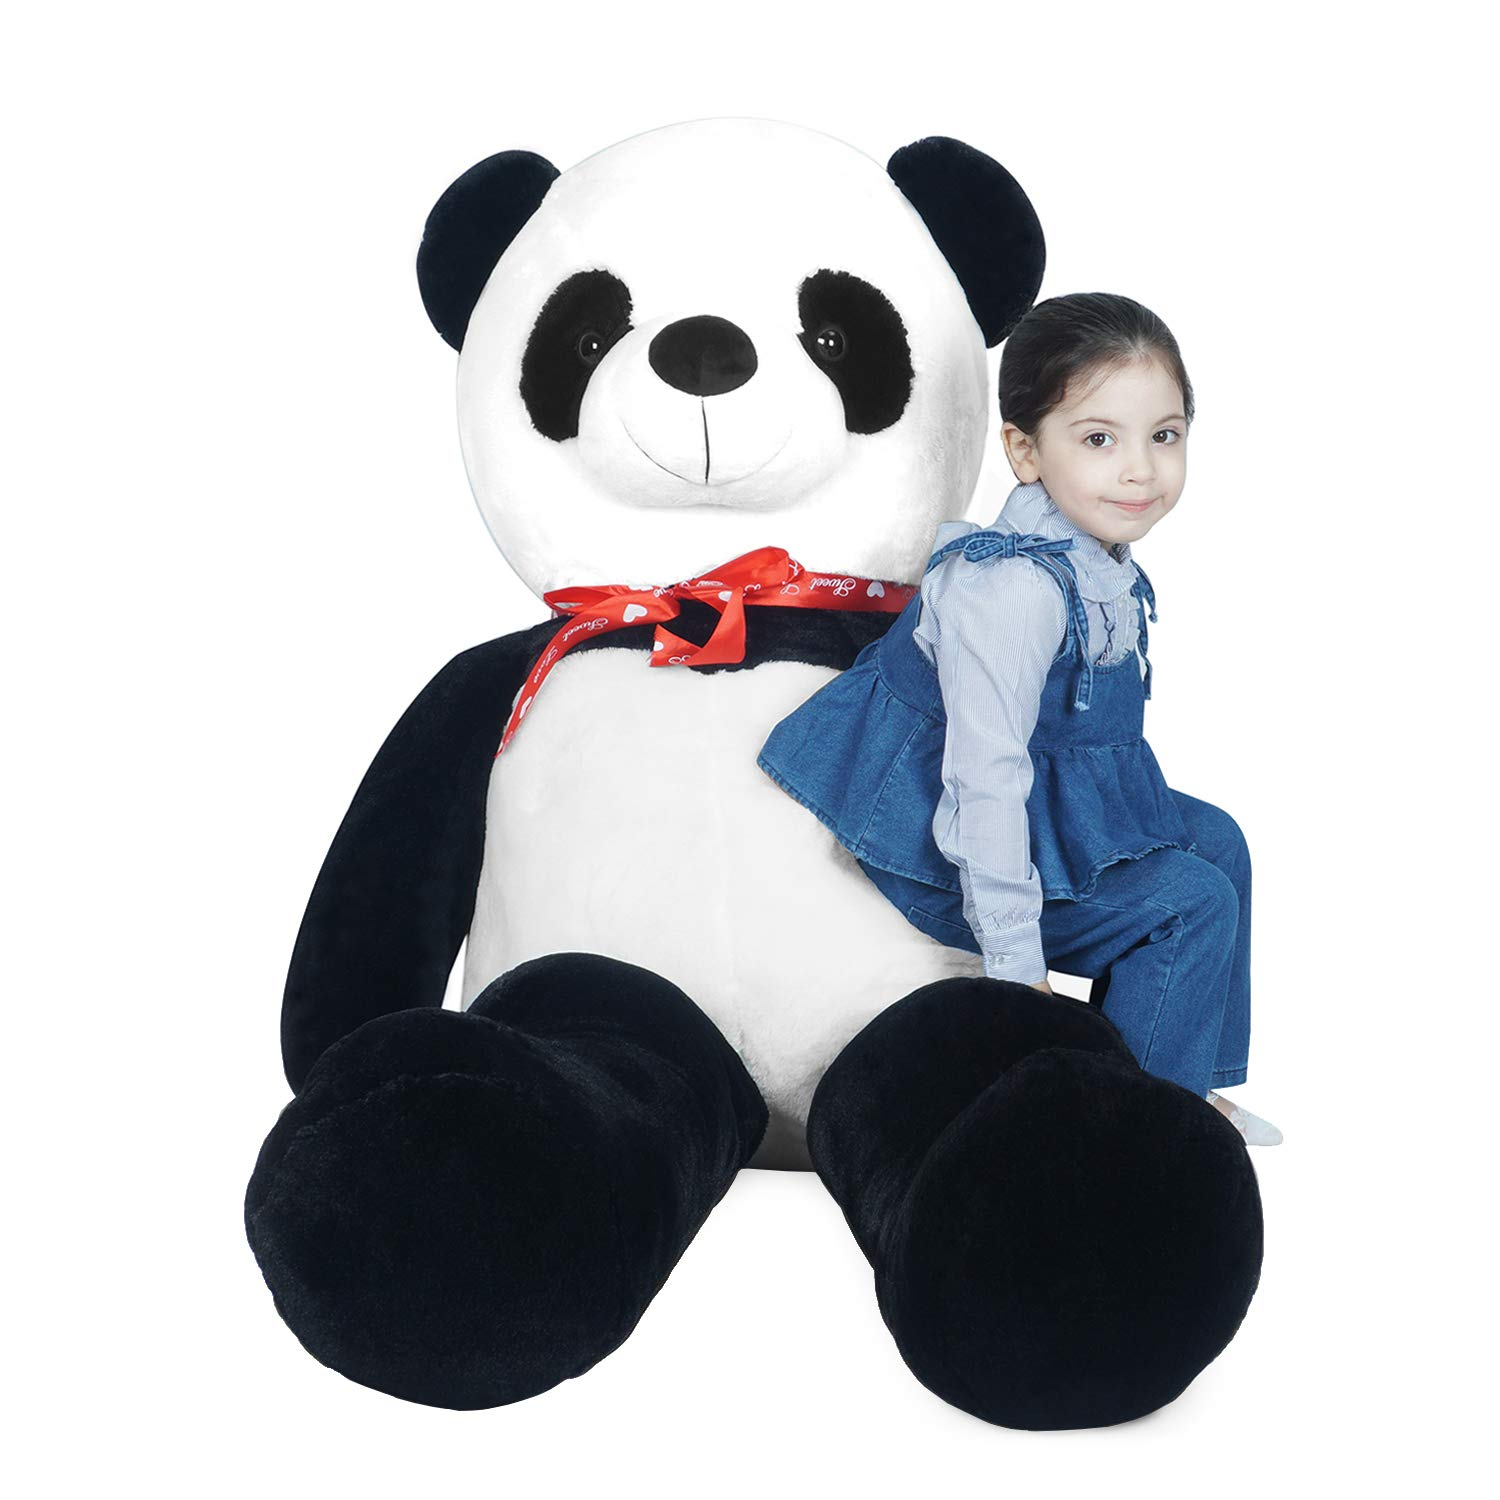 LOVOUS Super Soft Giant Stuffed Animal Panda Bear Plush Toy Gifts Kids, 5.2ft(62'') by LOVOUS